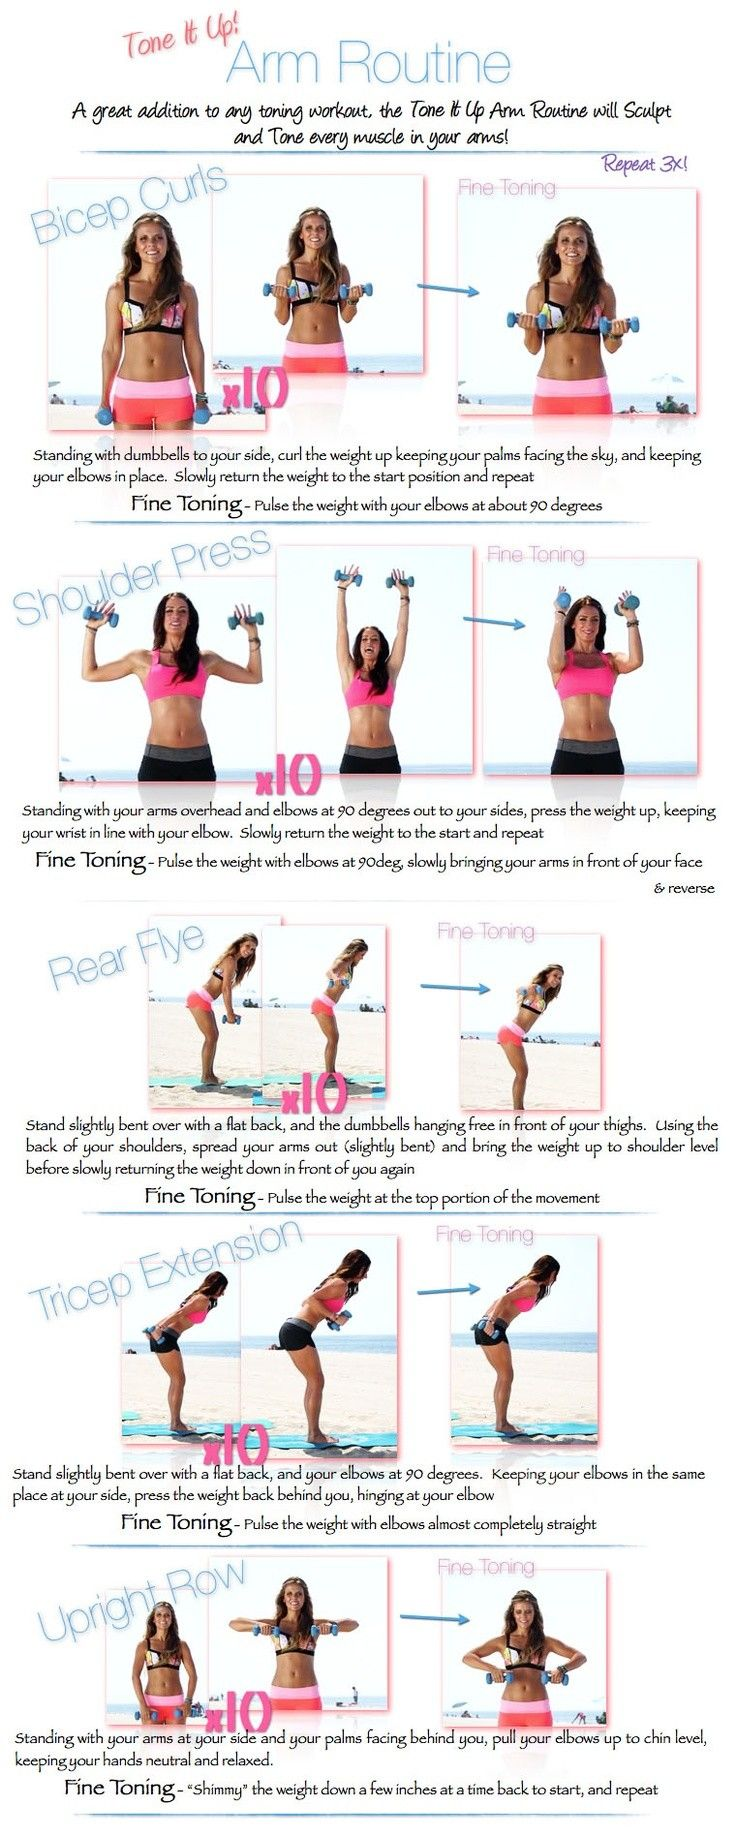 Get ready for tank top season with this 10-minute workout from celeb trainer Holly Perkins,10 minute belly blasting workout